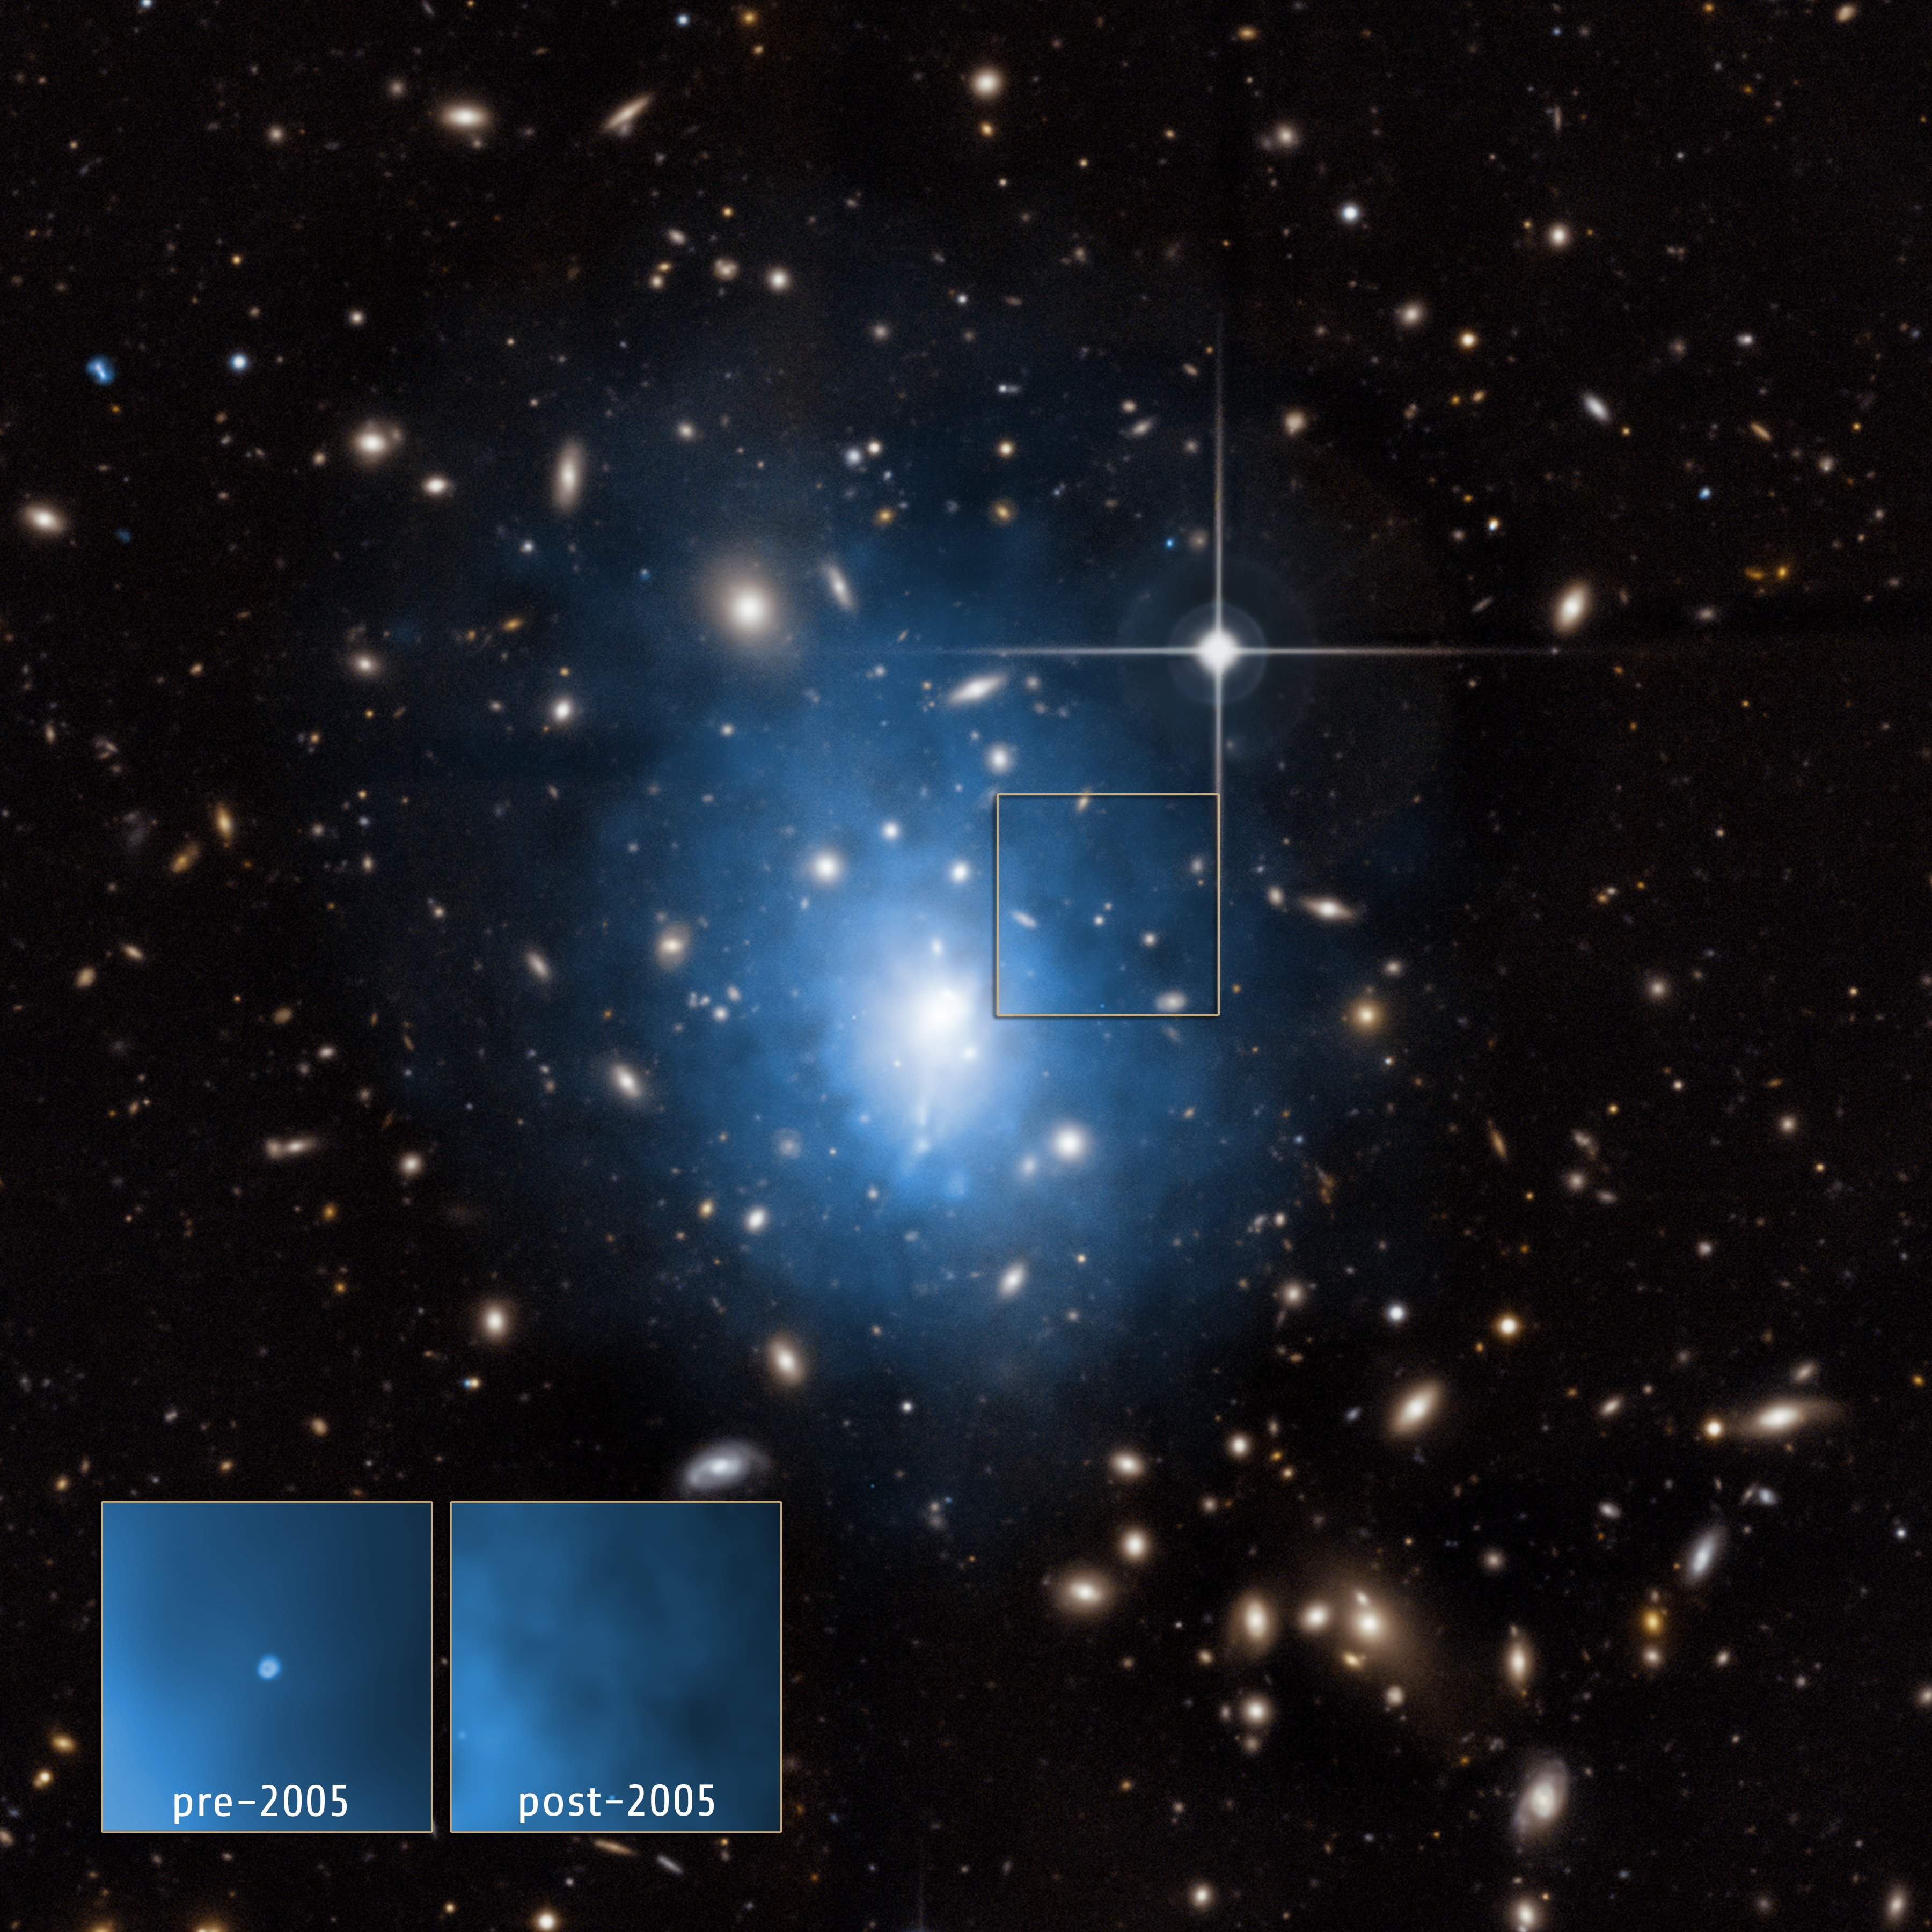 [ Watch the Video: A Tour of Galaxy Cluster Abell 1795 ]